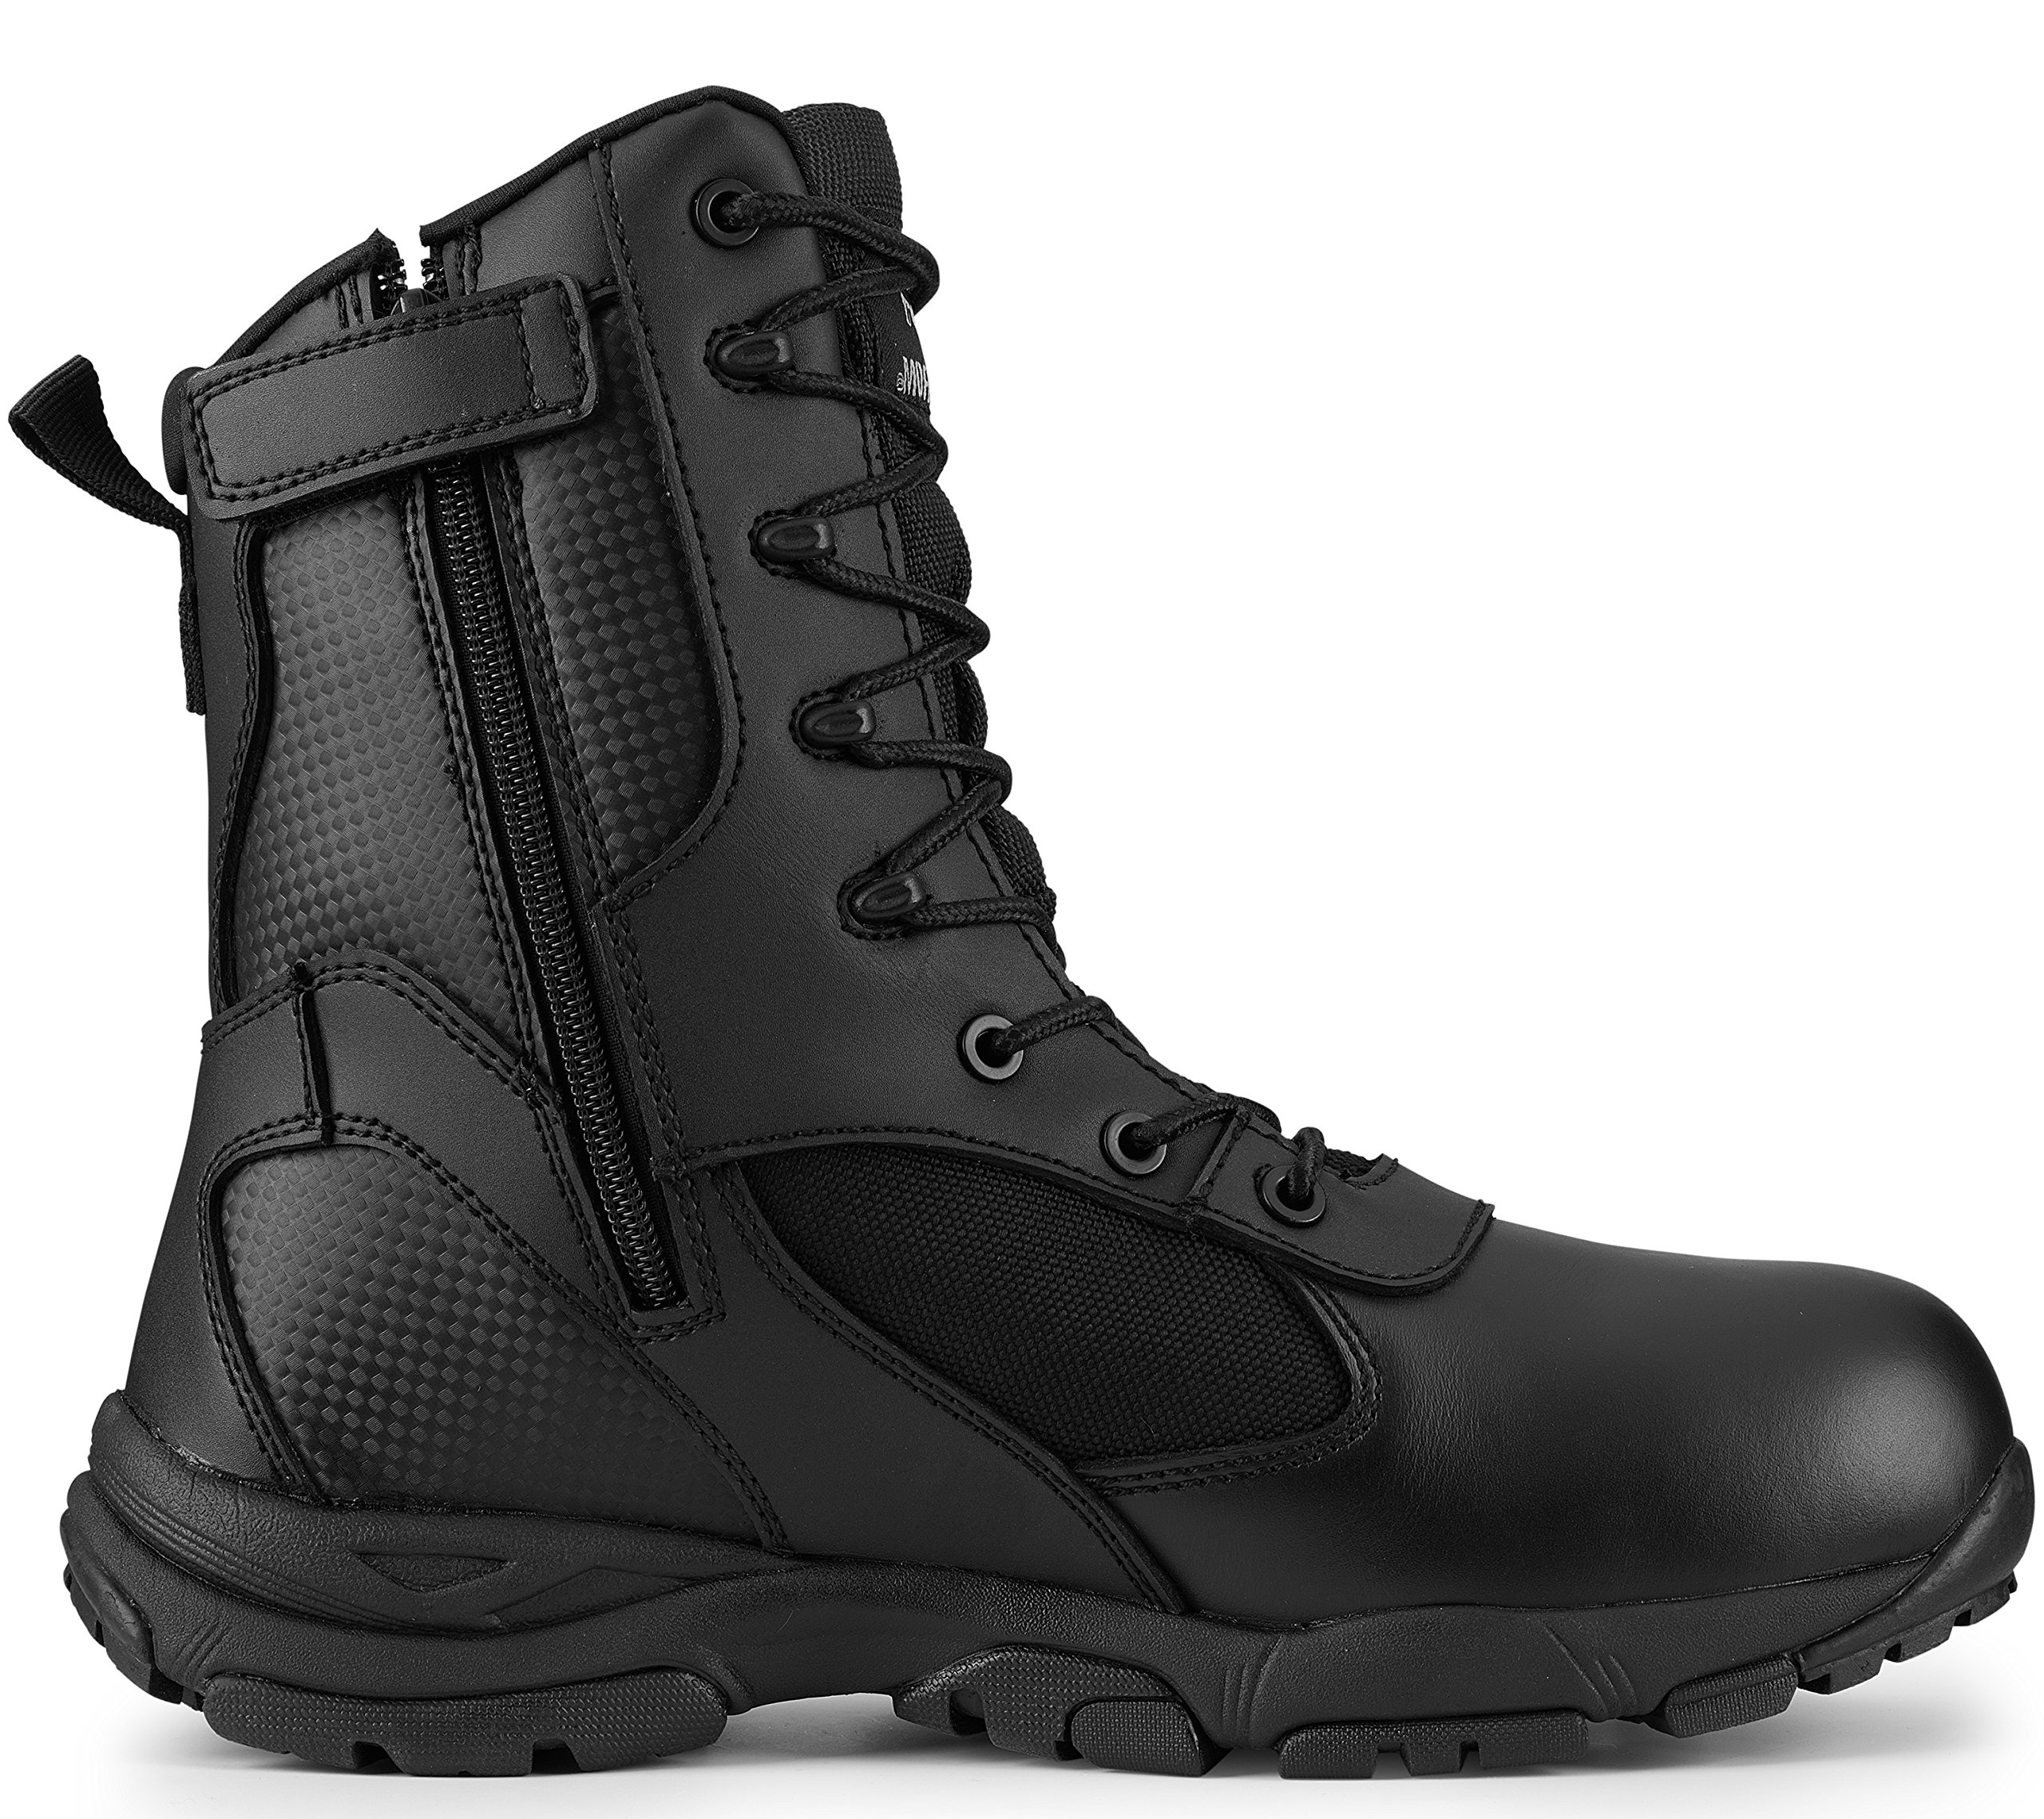 Maelstrom Men's TAC ATHLON 8'' Black Side Zipper Tactical Work Boots Law Enforcement, Security, Work and Military | Athletic, Waterproof, Breathable, Comfortable | Lightweight 17.5 oz | One Year Warranty, Size 8.5M by Maelstrom